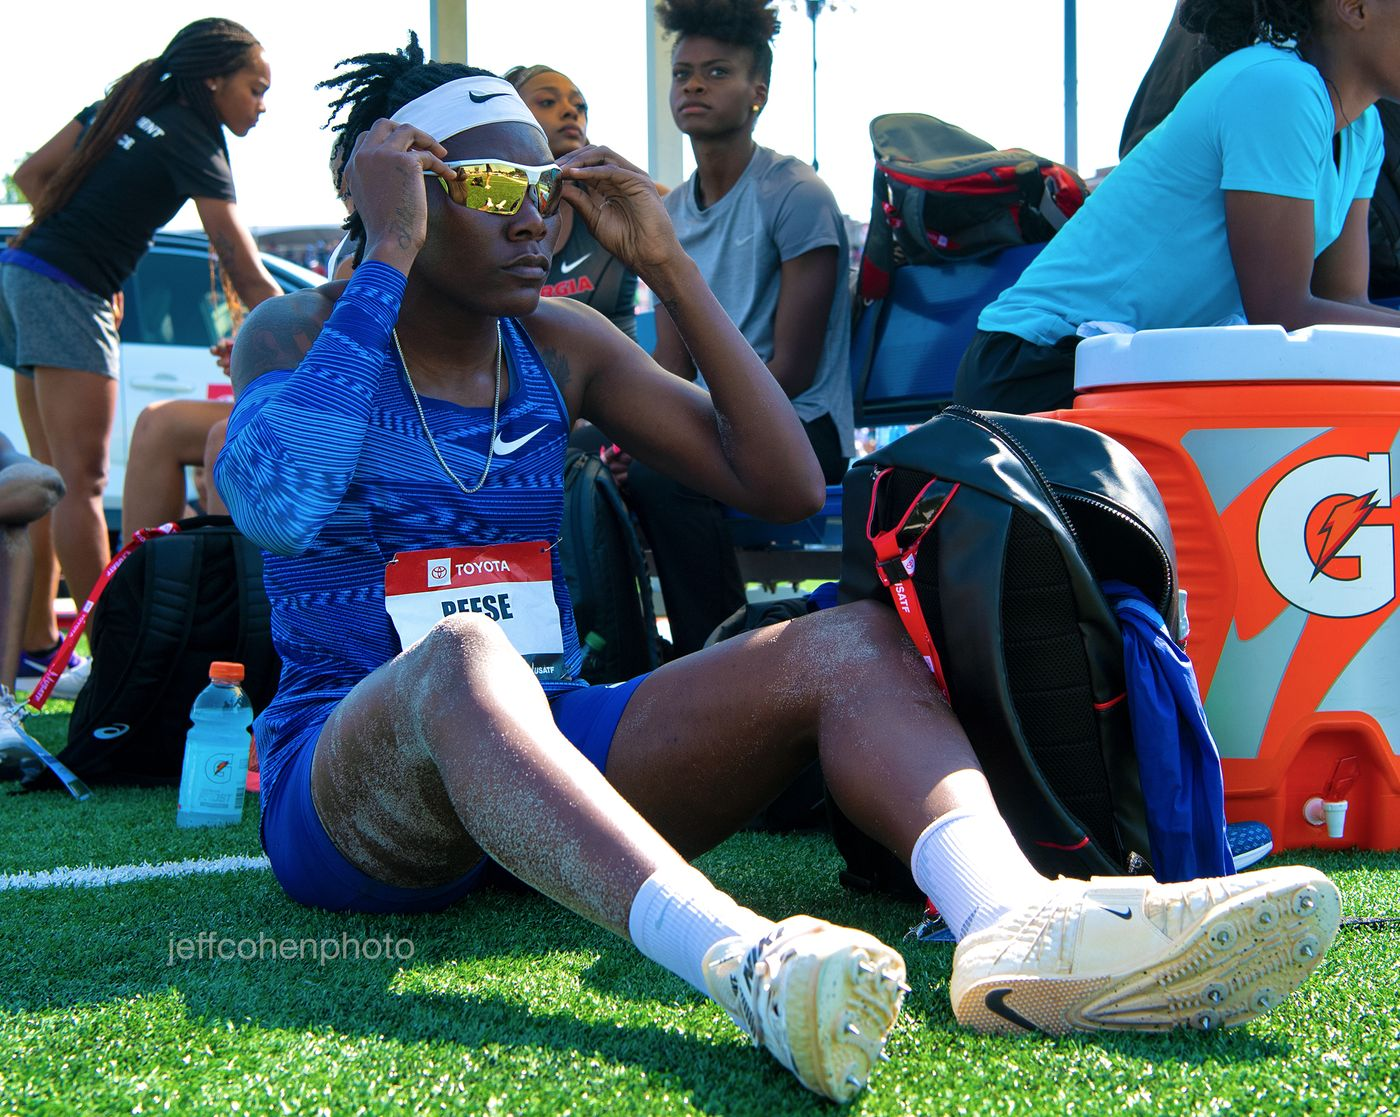 2019-USATF-Outdoor-Champs-day-3-reese-ljw--3219---jeff-cohen-photo--web.jpg